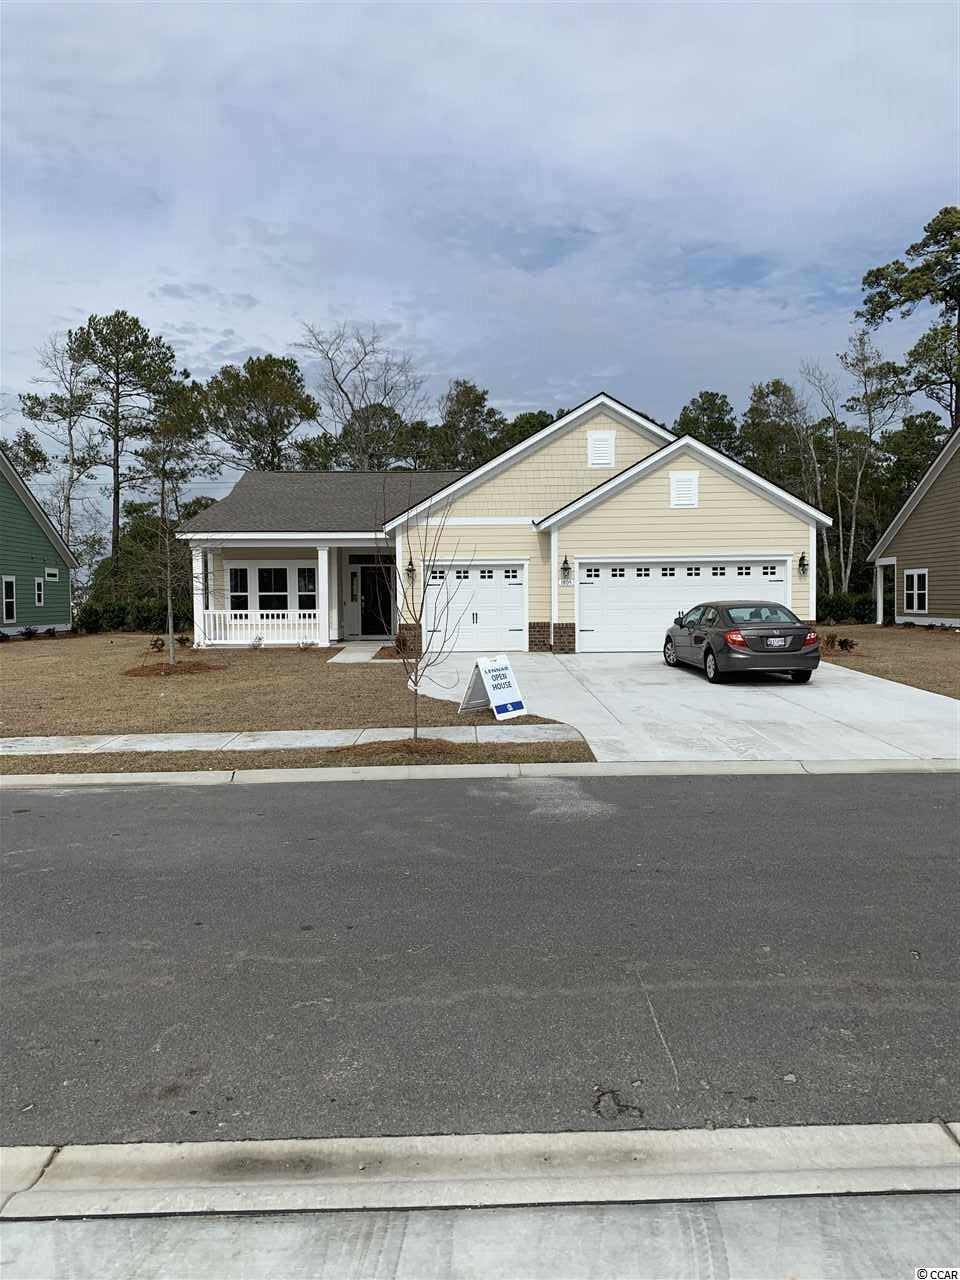 In partnership with Amazon, We are the first and only WiFi Certified Home Builder. Our Muirwood plan offers a 3 car garage, single story open floor plan.  This home features, Hardiplank siding, granite counter tops, staggered kitchen cabinets, stainless steel appliances, tile backsplash, Mohawk Cedar View Laminate Flooring, rannai tankless water heater. Seabrook Plantation in North Myrtle Beach is a Natural Gas Community.  Seabrook Plantation located a mile from the beach.  Enjoy a golf car ride to the beach, shopping and to Main Street.  **Photos are of similar home in another community. Buyer responsible for verification of all measurements.**